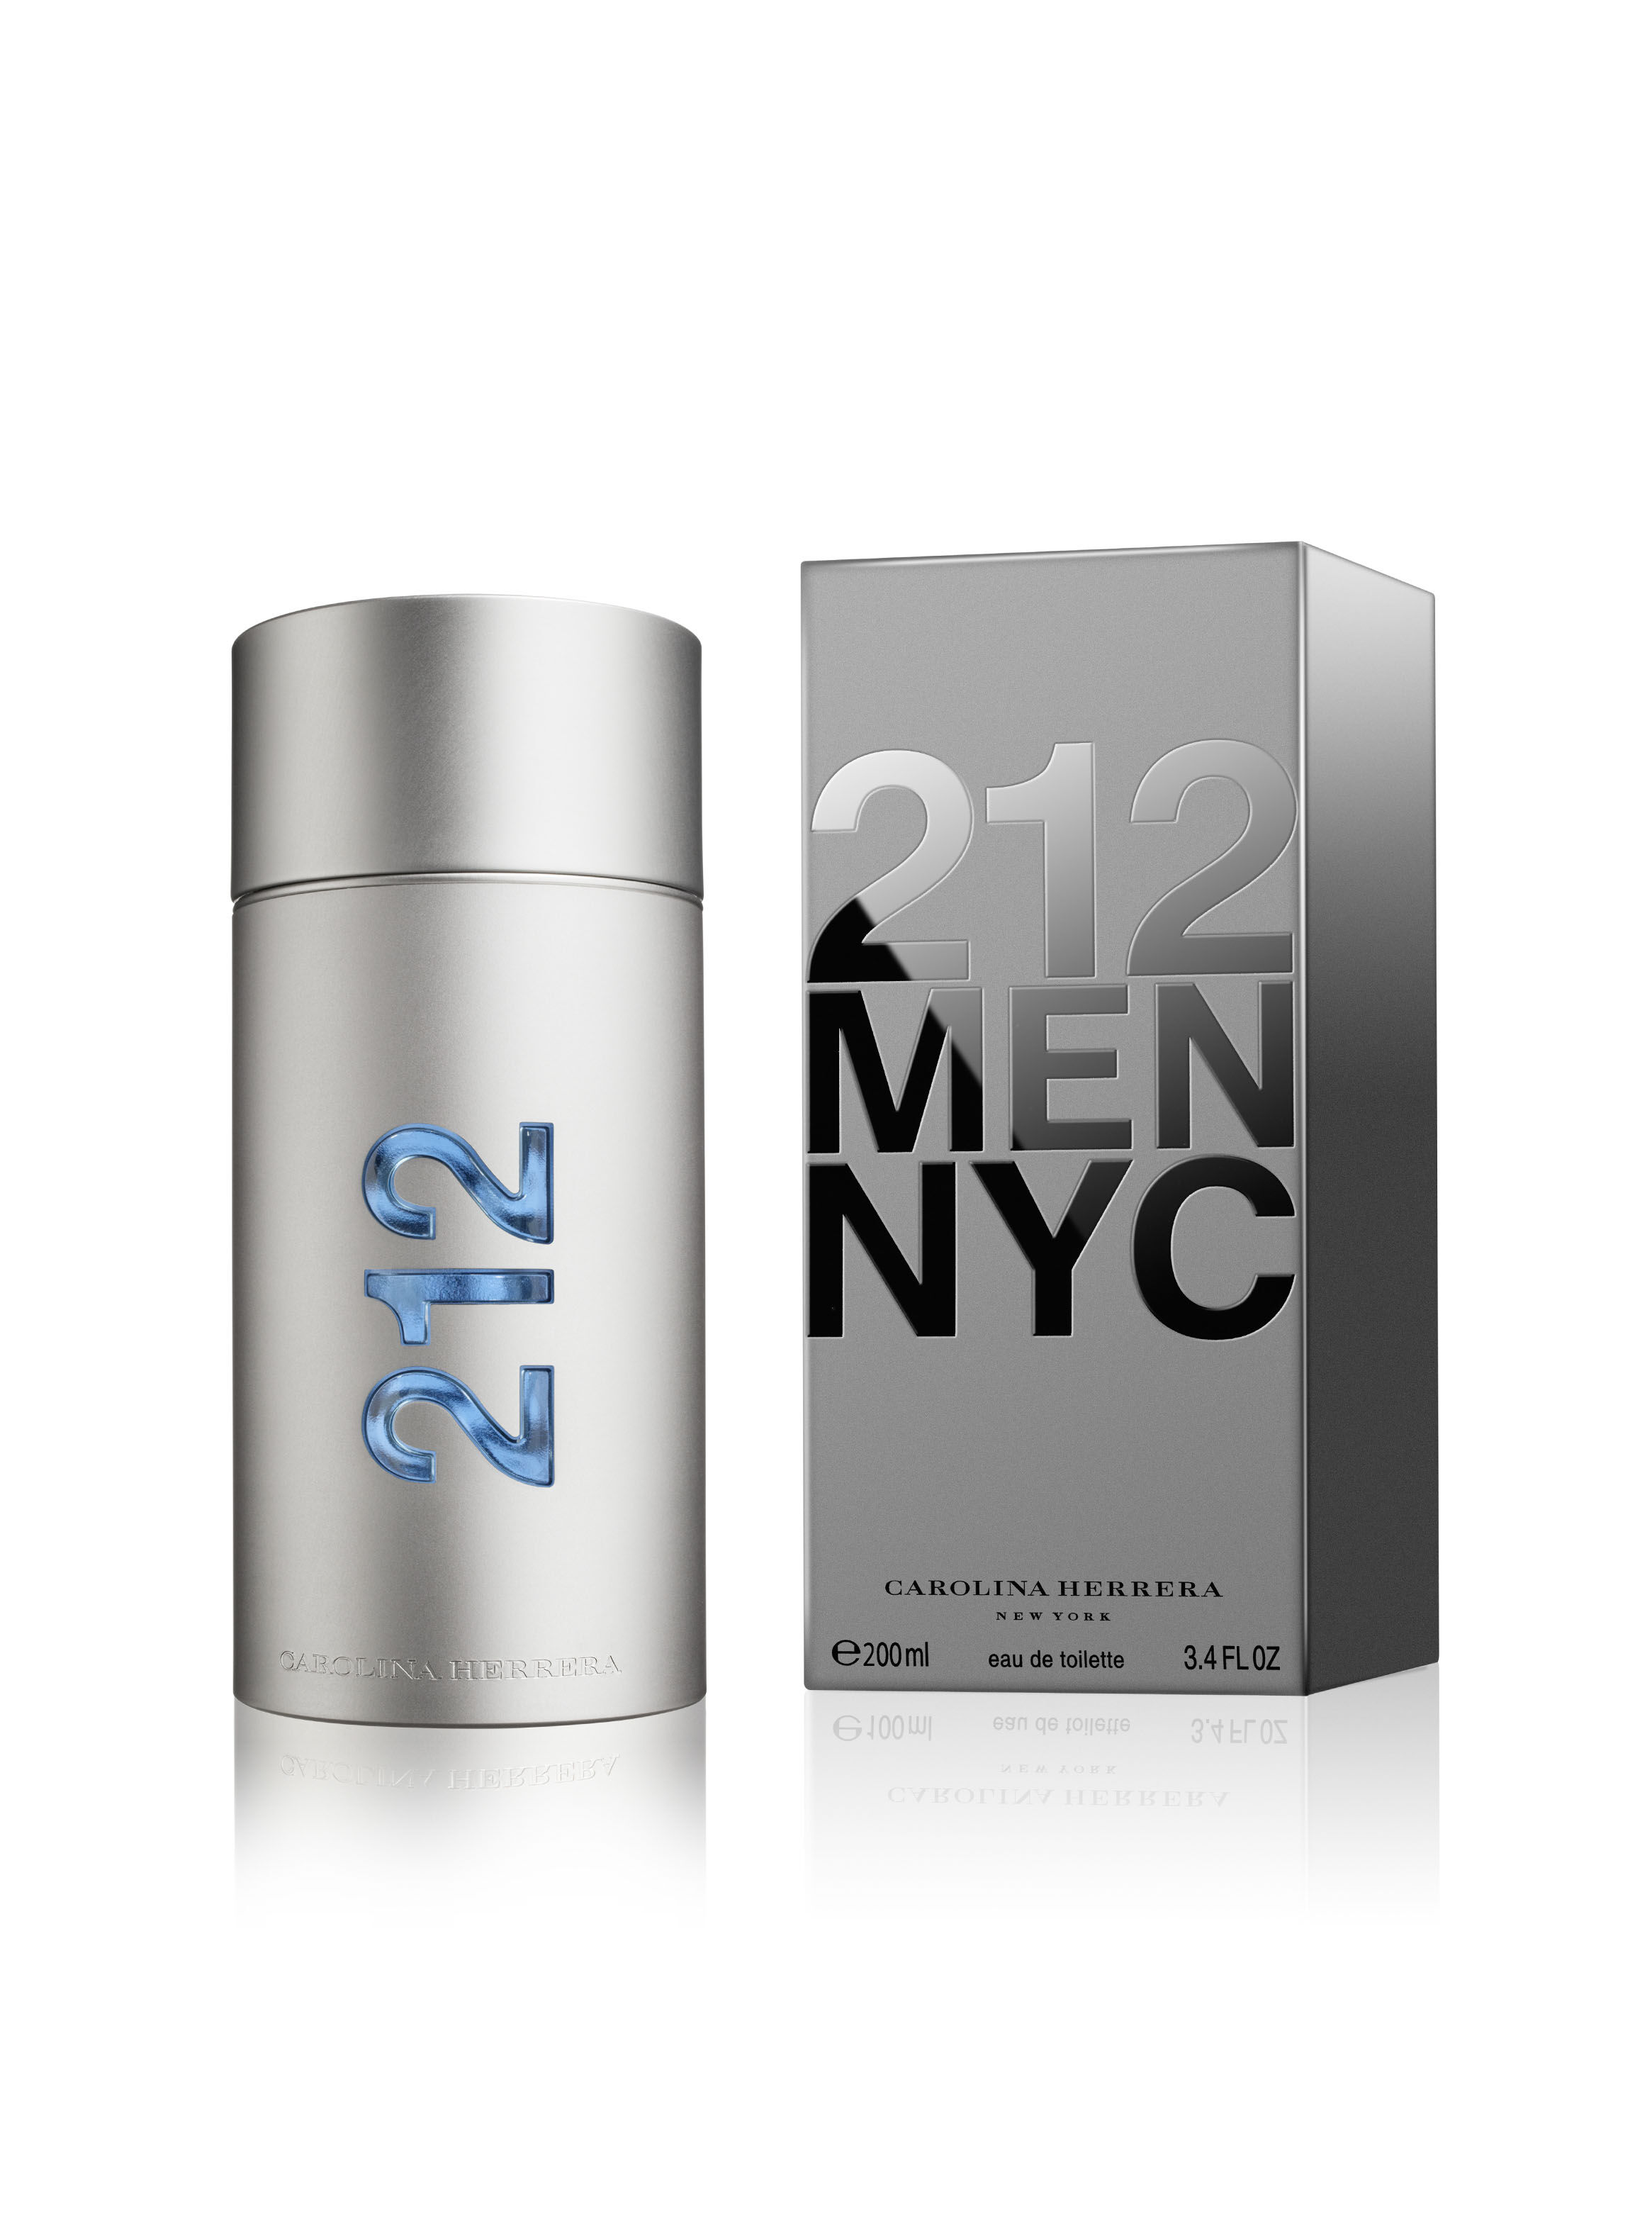 Perfume Nyc Edt 200 Ml PerfumesParis 212 Carolina En Herrera eEoxCrdWQB